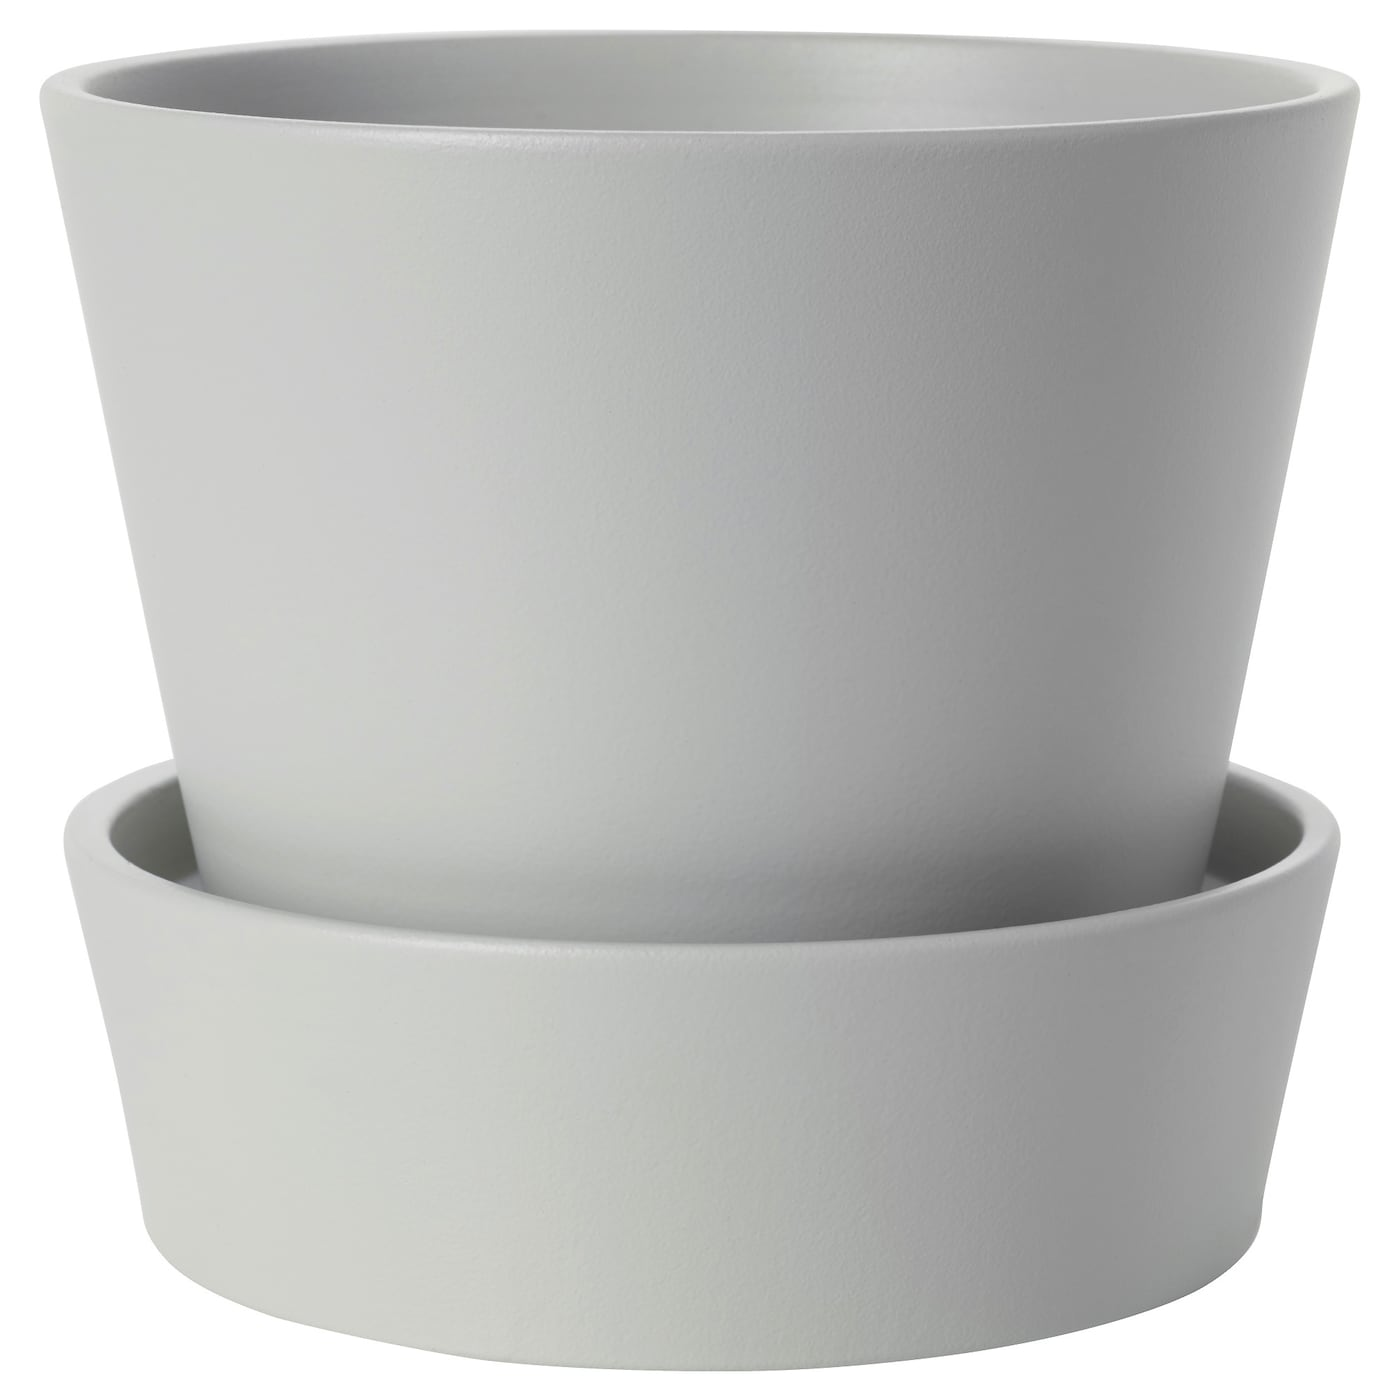 senap plant pot with saucer grey 12 cm ikea. Black Bedroom Furniture Sets. Home Design Ideas